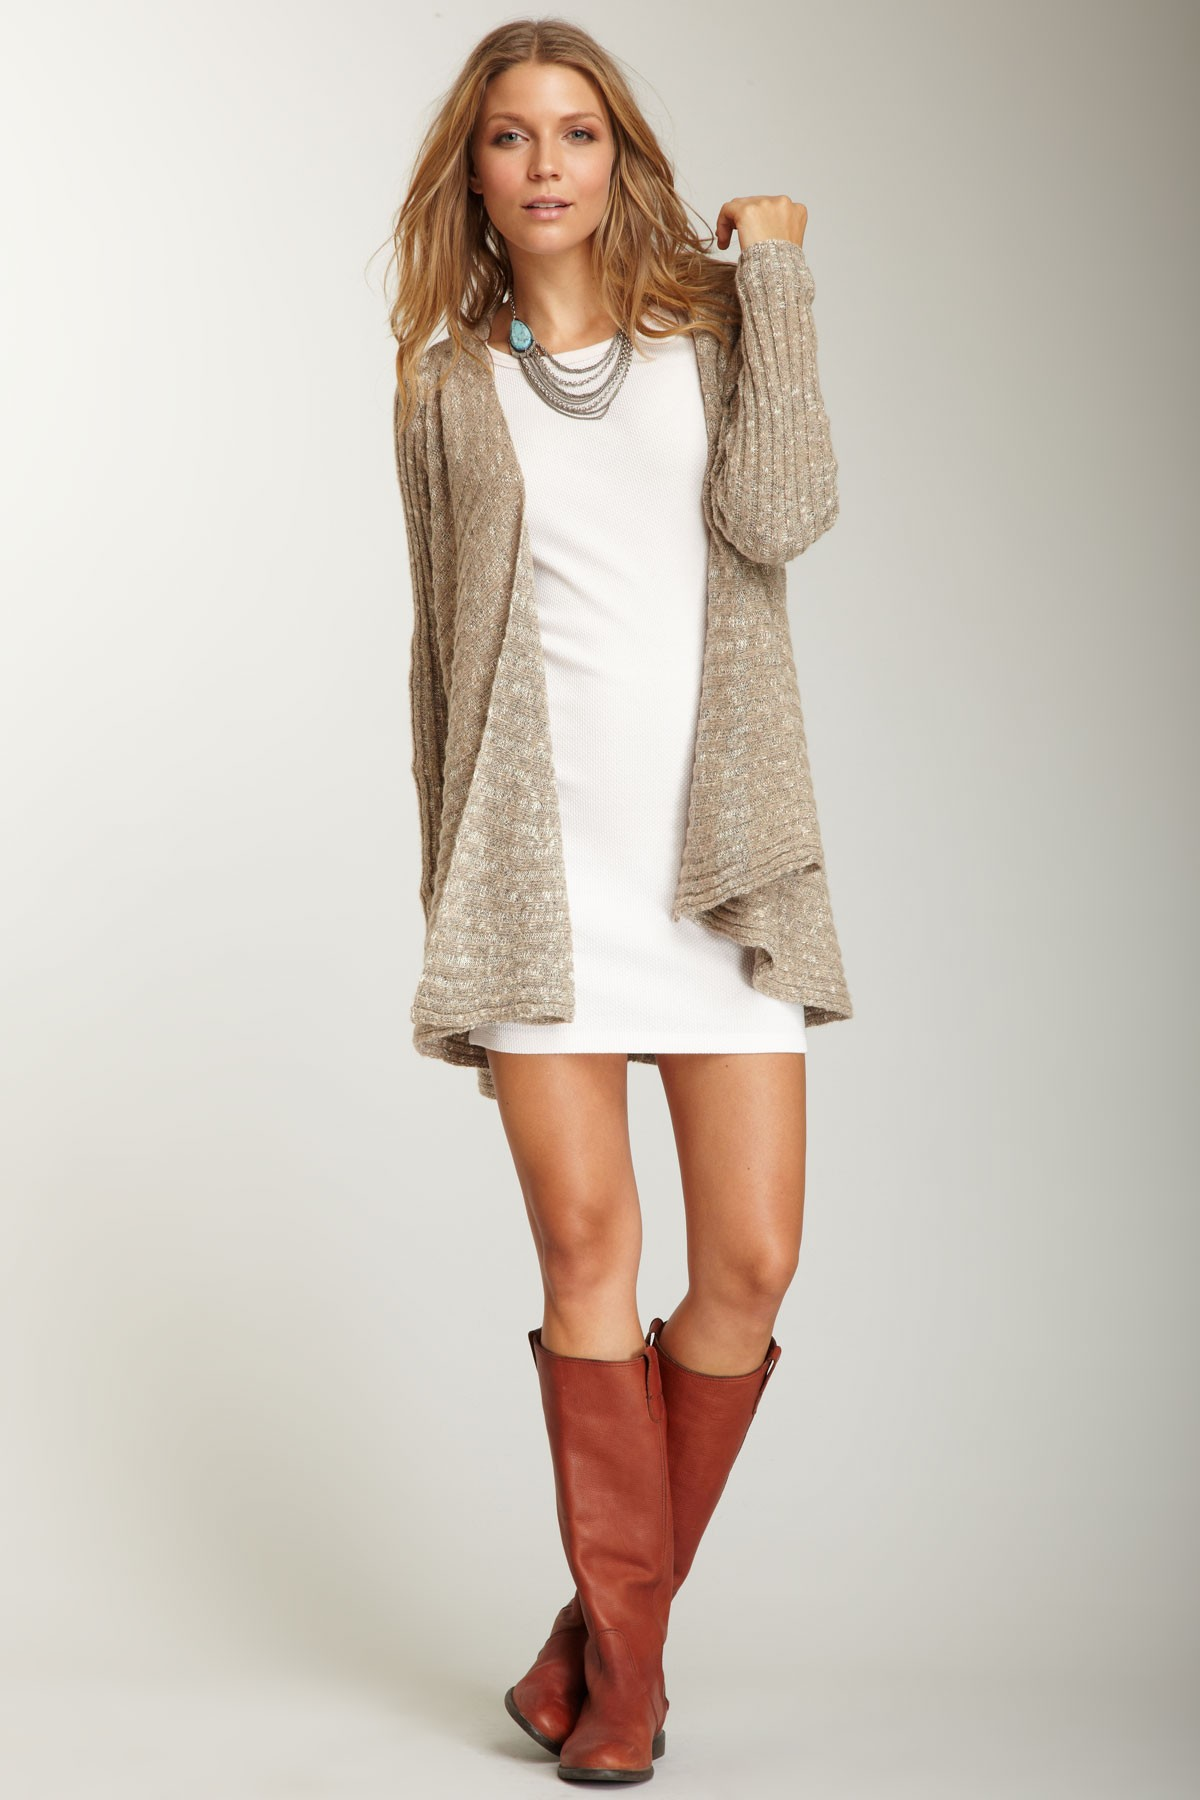 15 Best Ways to Wear Long Cardigan Sweater - FMag.com